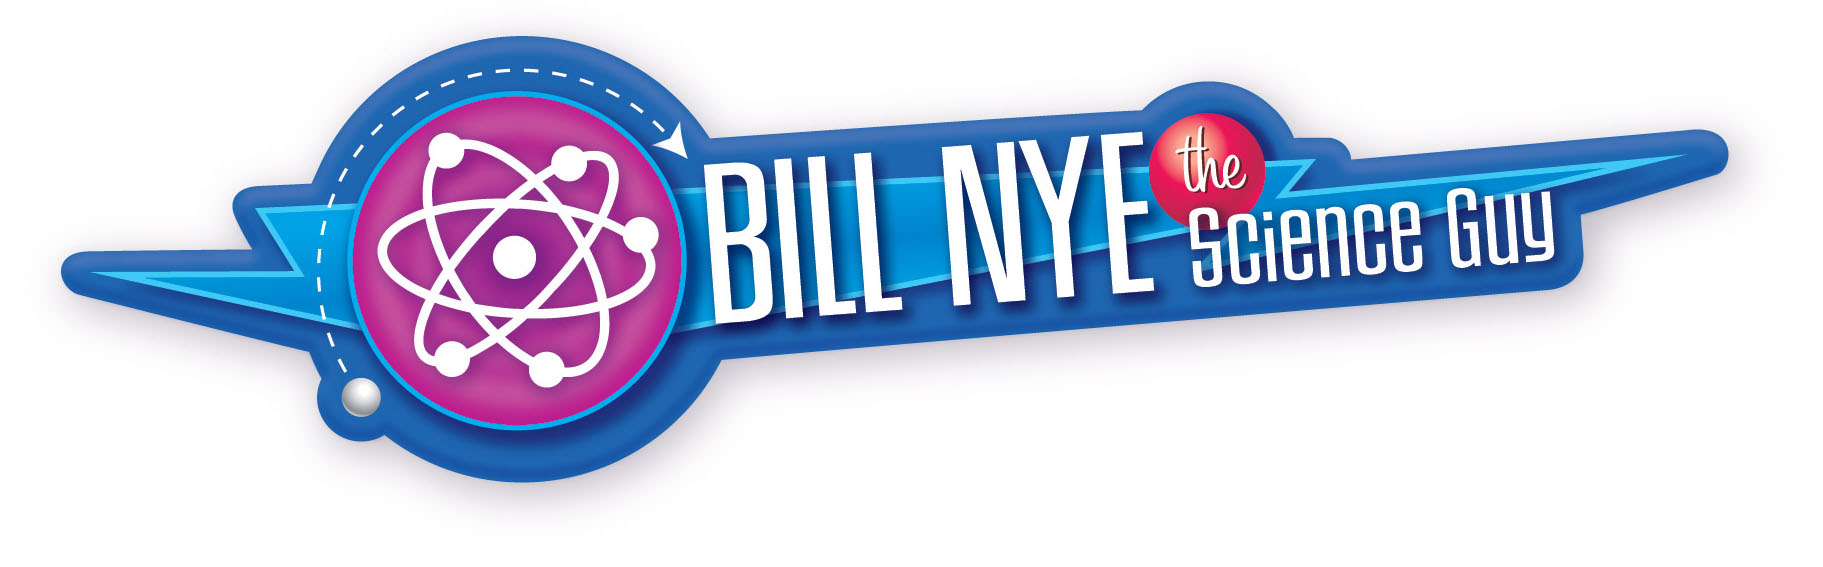 Image result for bill nye the science guy logo